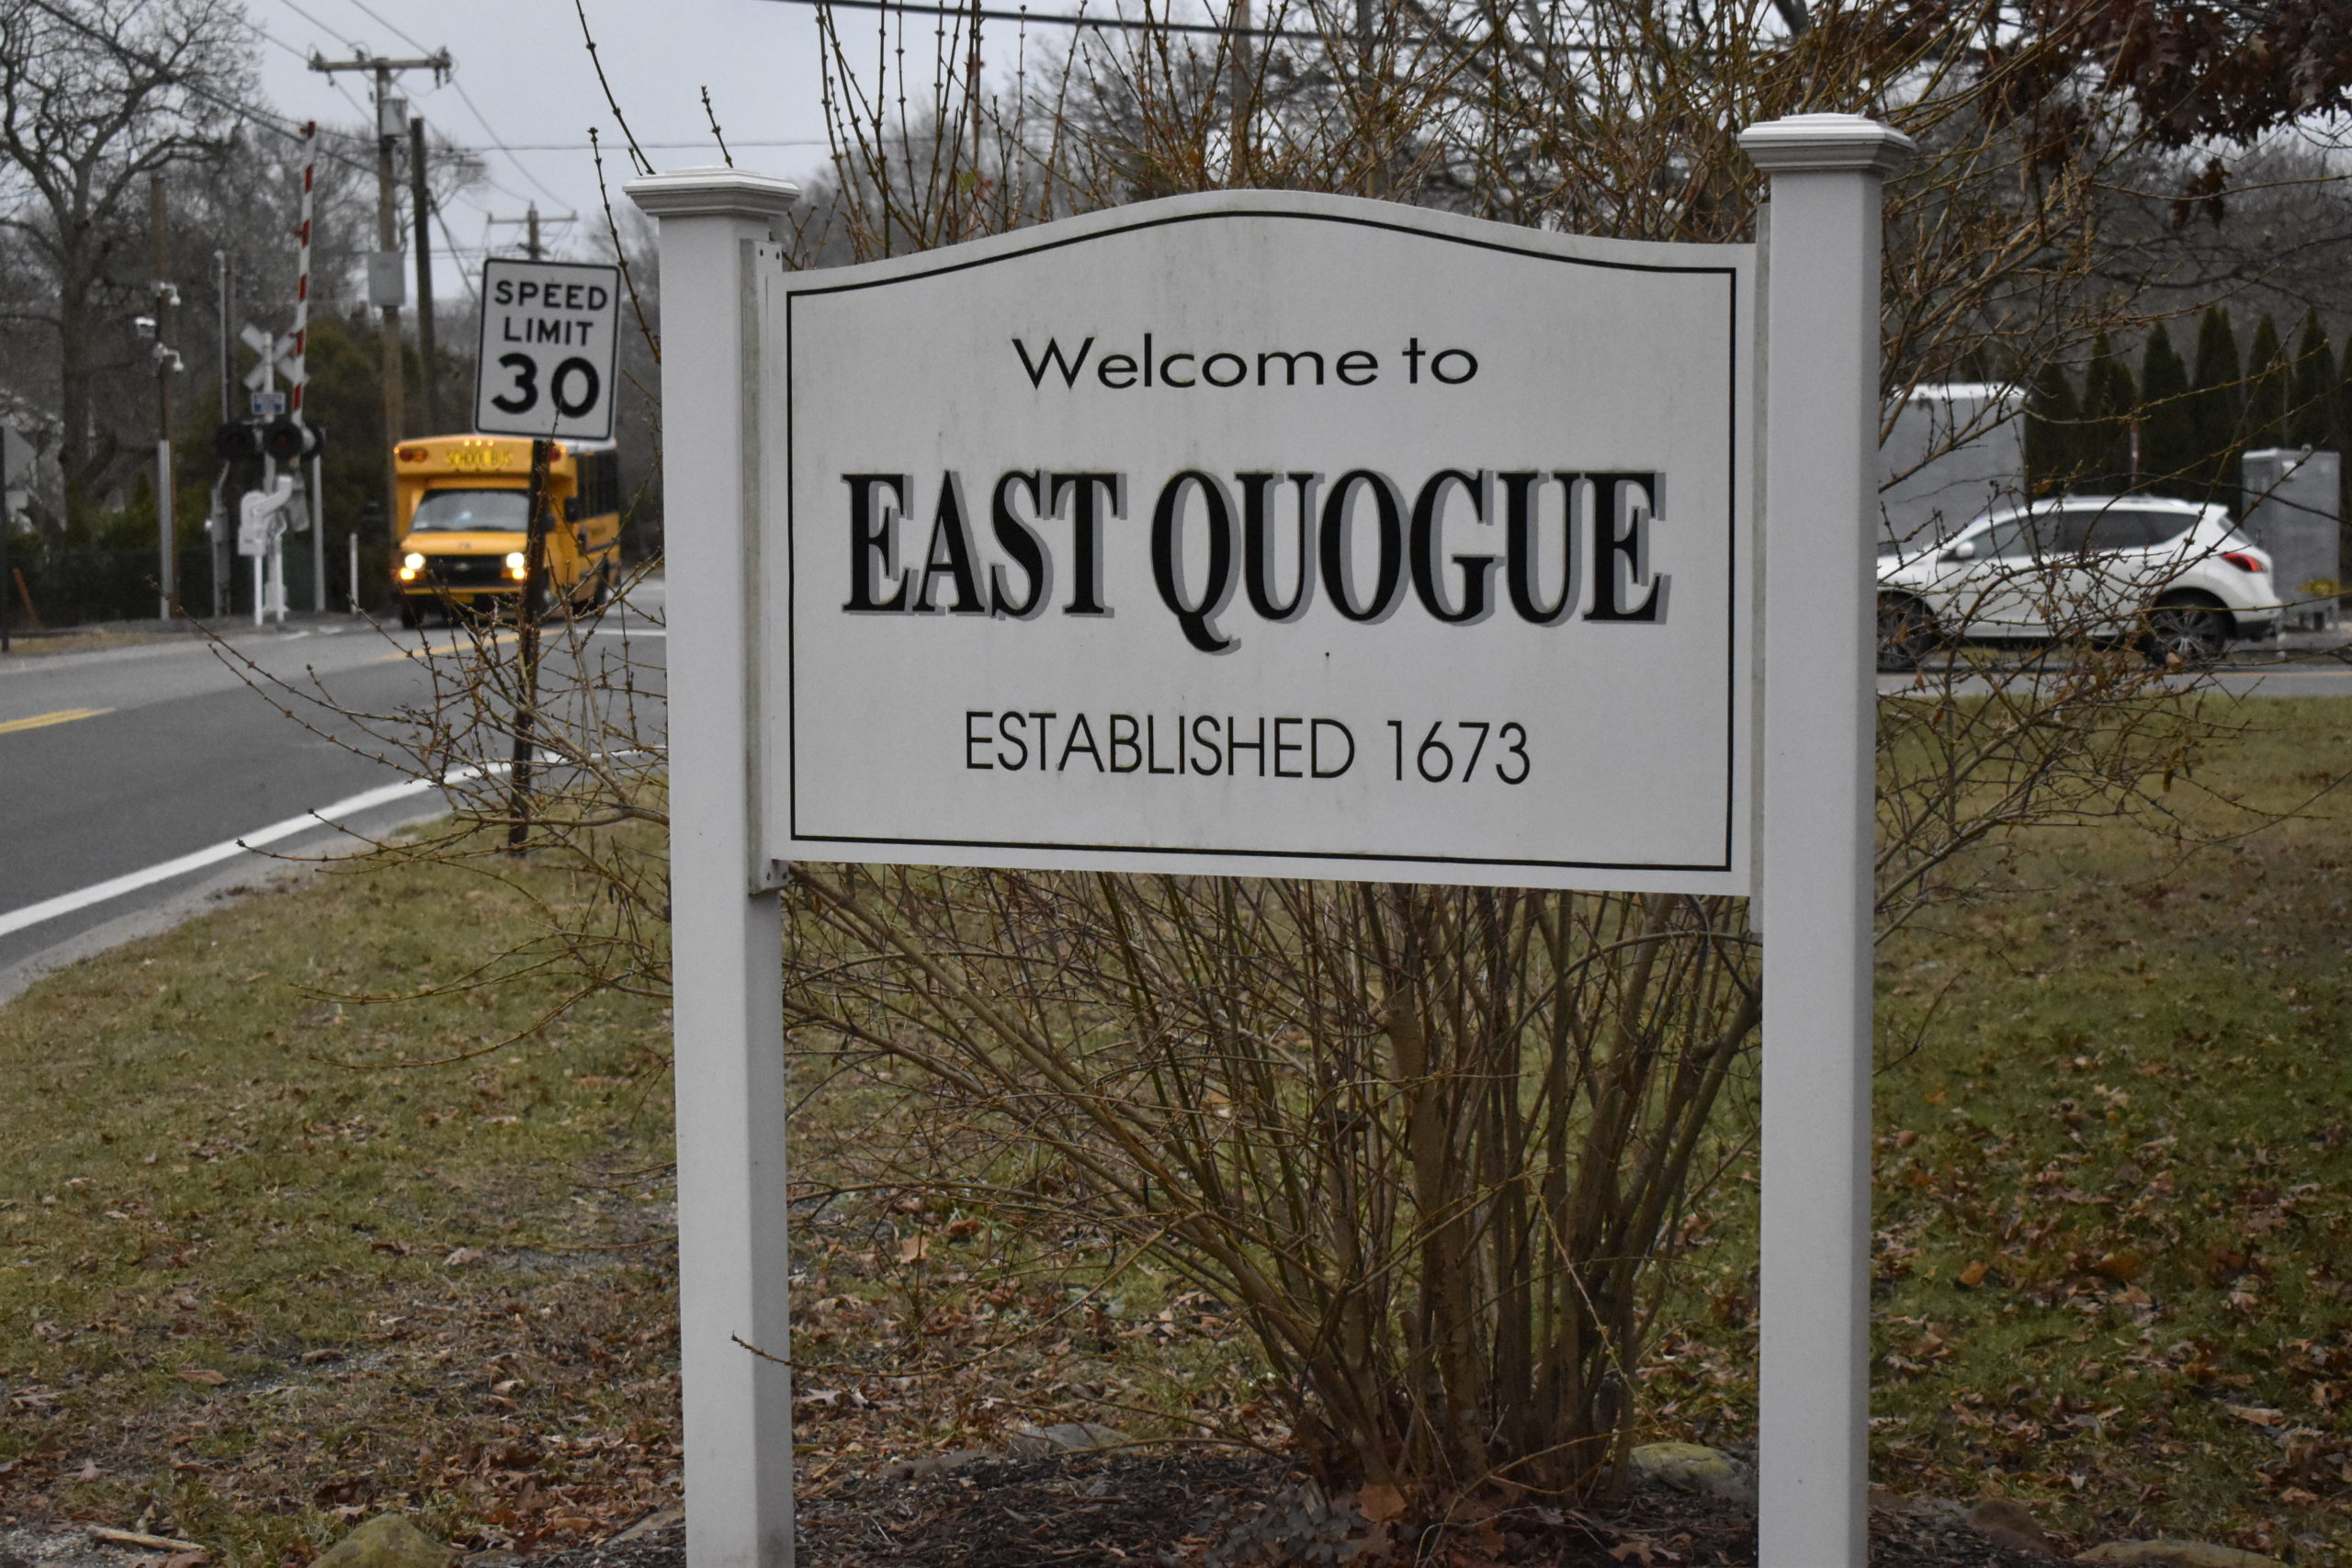 The East Quogue Village Exploratory Committee is pushing to have the hamlet incorporated into a village. VALERIE GORDON